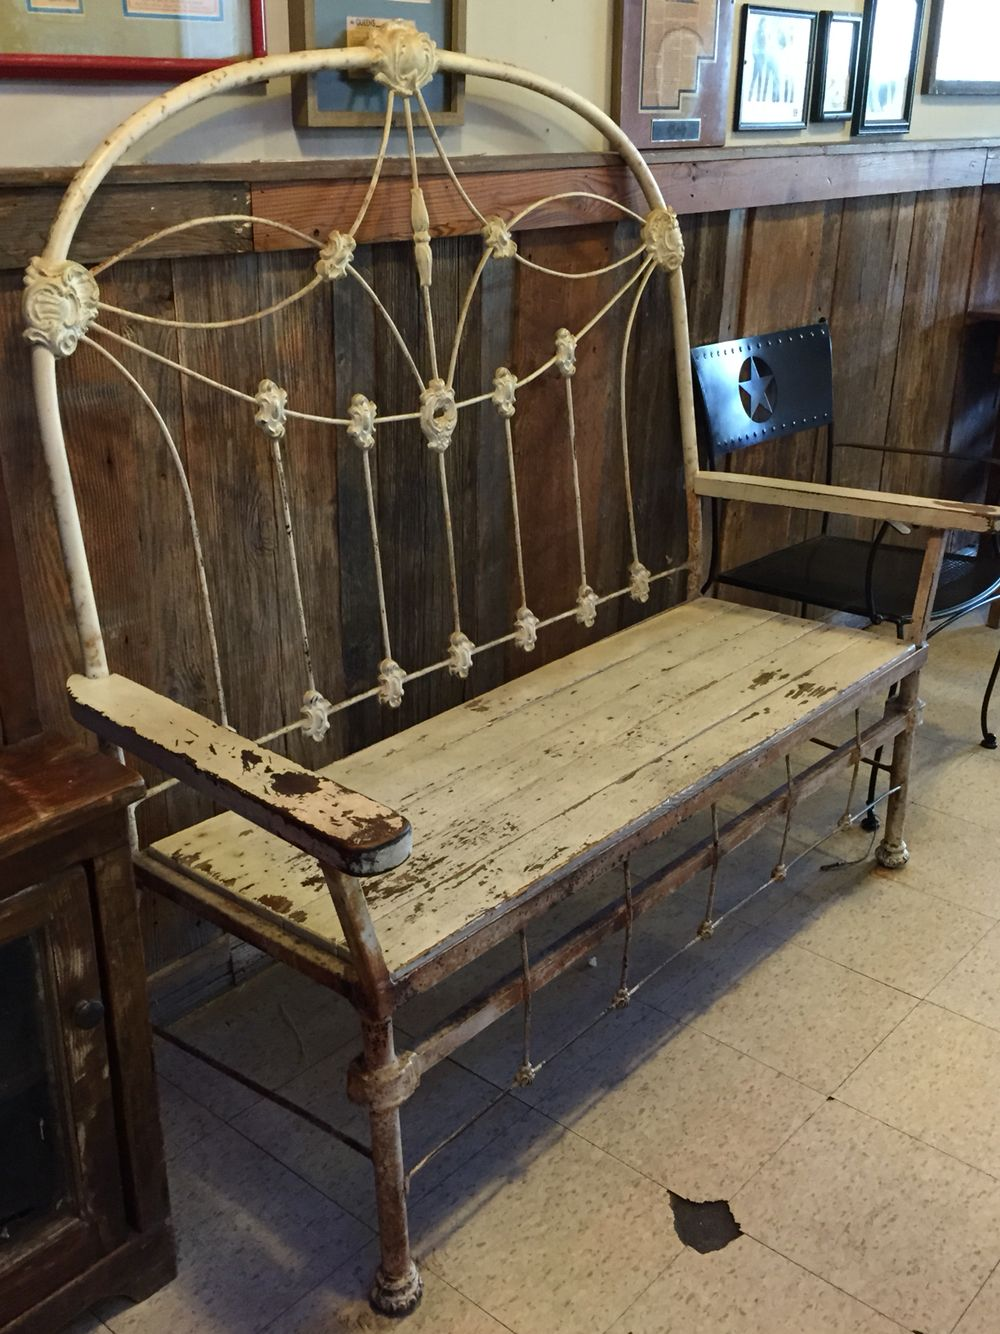 Antique french iron bed -  Antique Iron Bed Reclaimed Wood Made Into A Bench